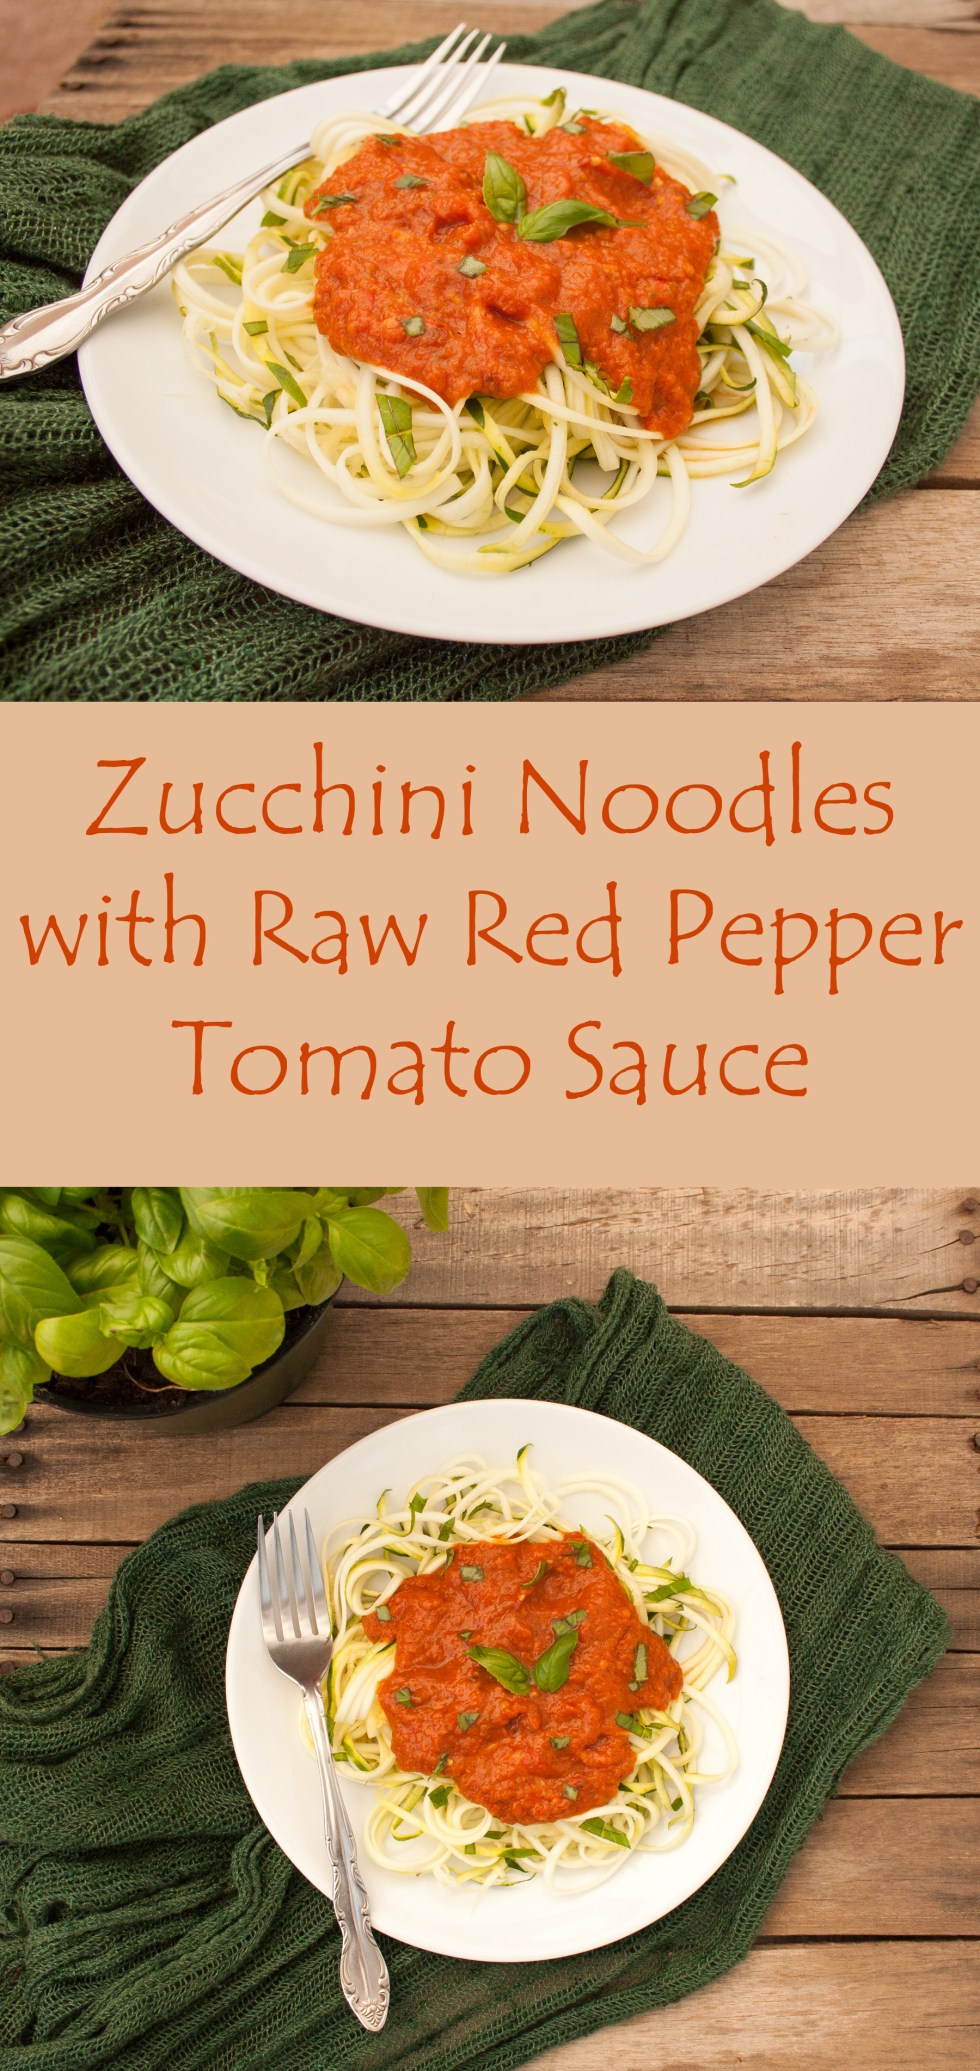 Zucchini noodles with raw red pepper sauce create mindfully zucchini noodles with raw red pepper sauce this raw vegan dish can be served hot forumfinder Choice Image